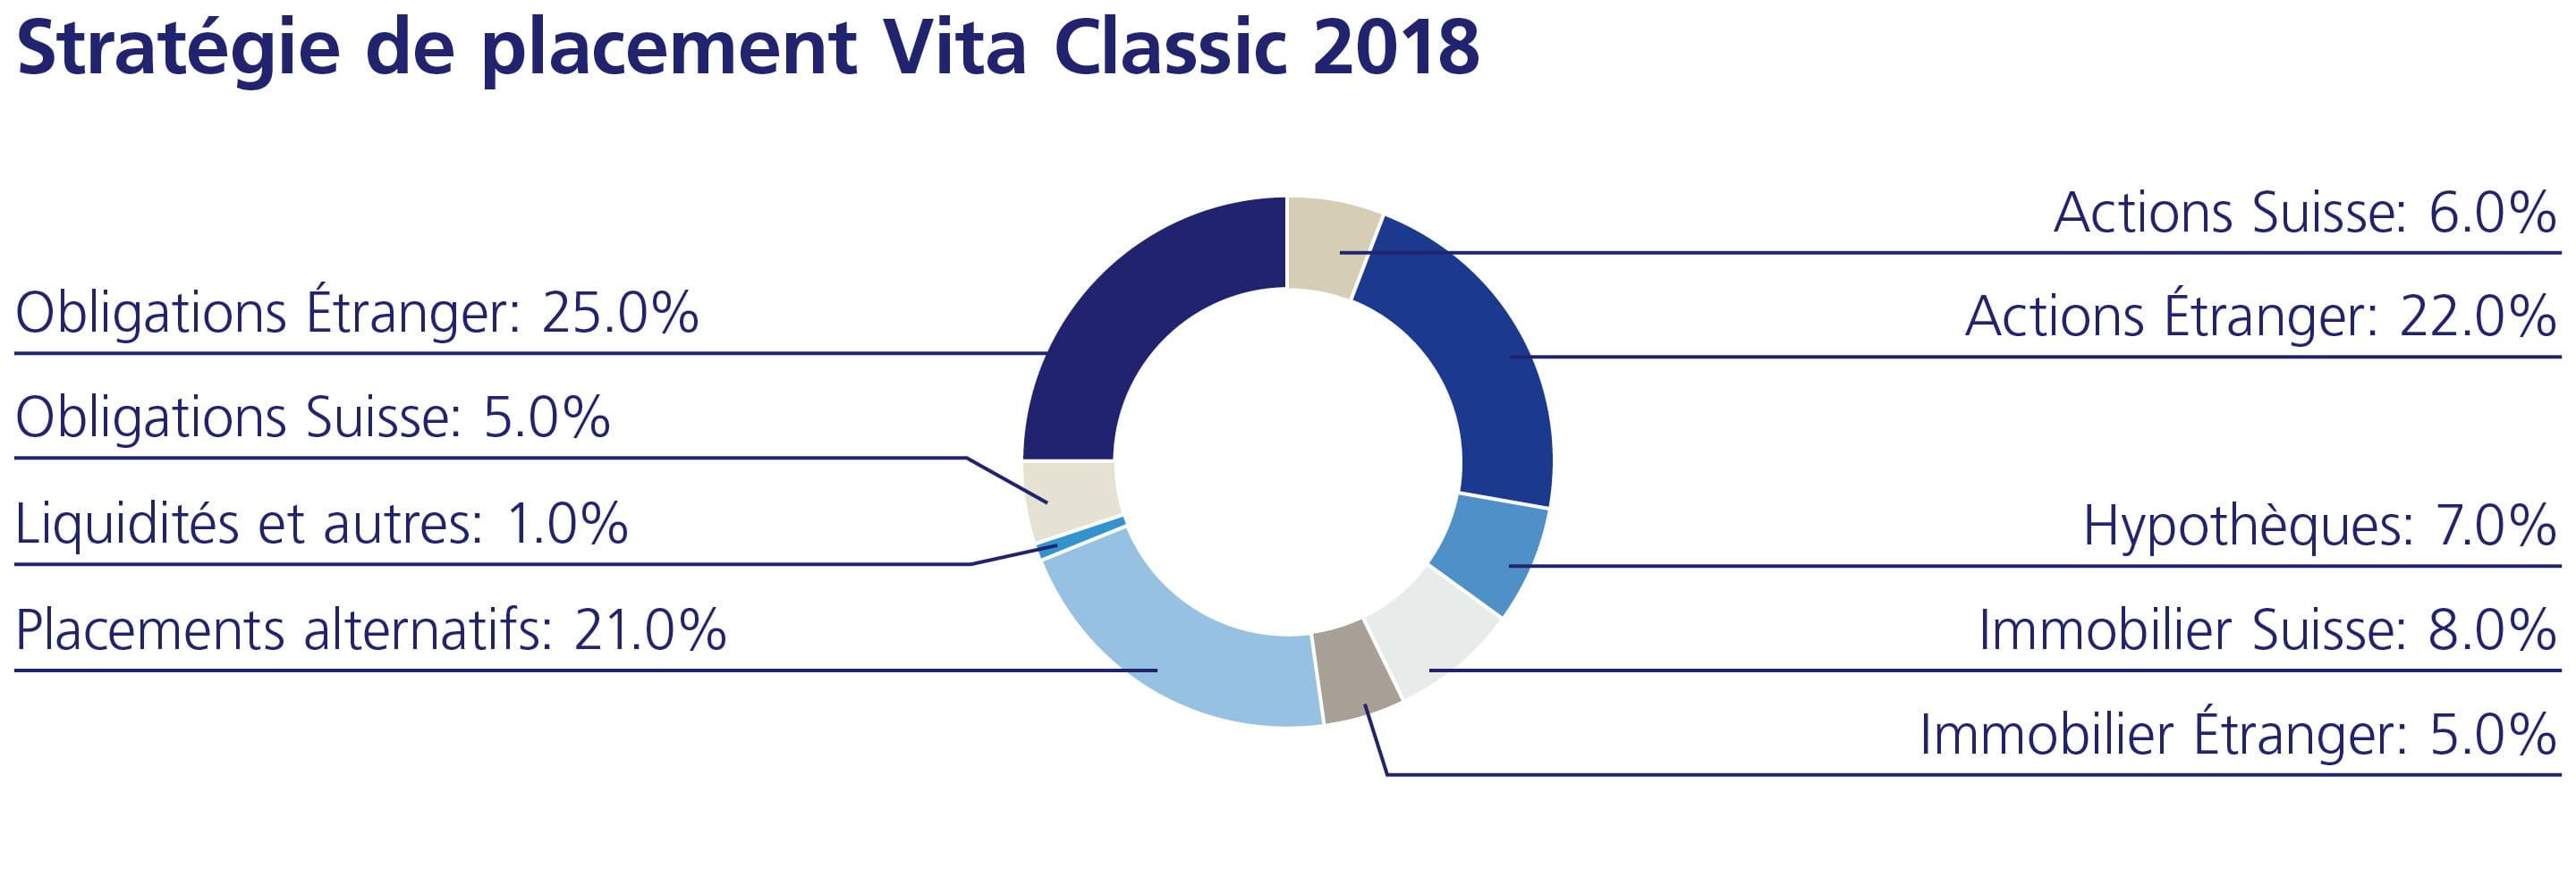 Stratégie de placement Vita Calssic 2018